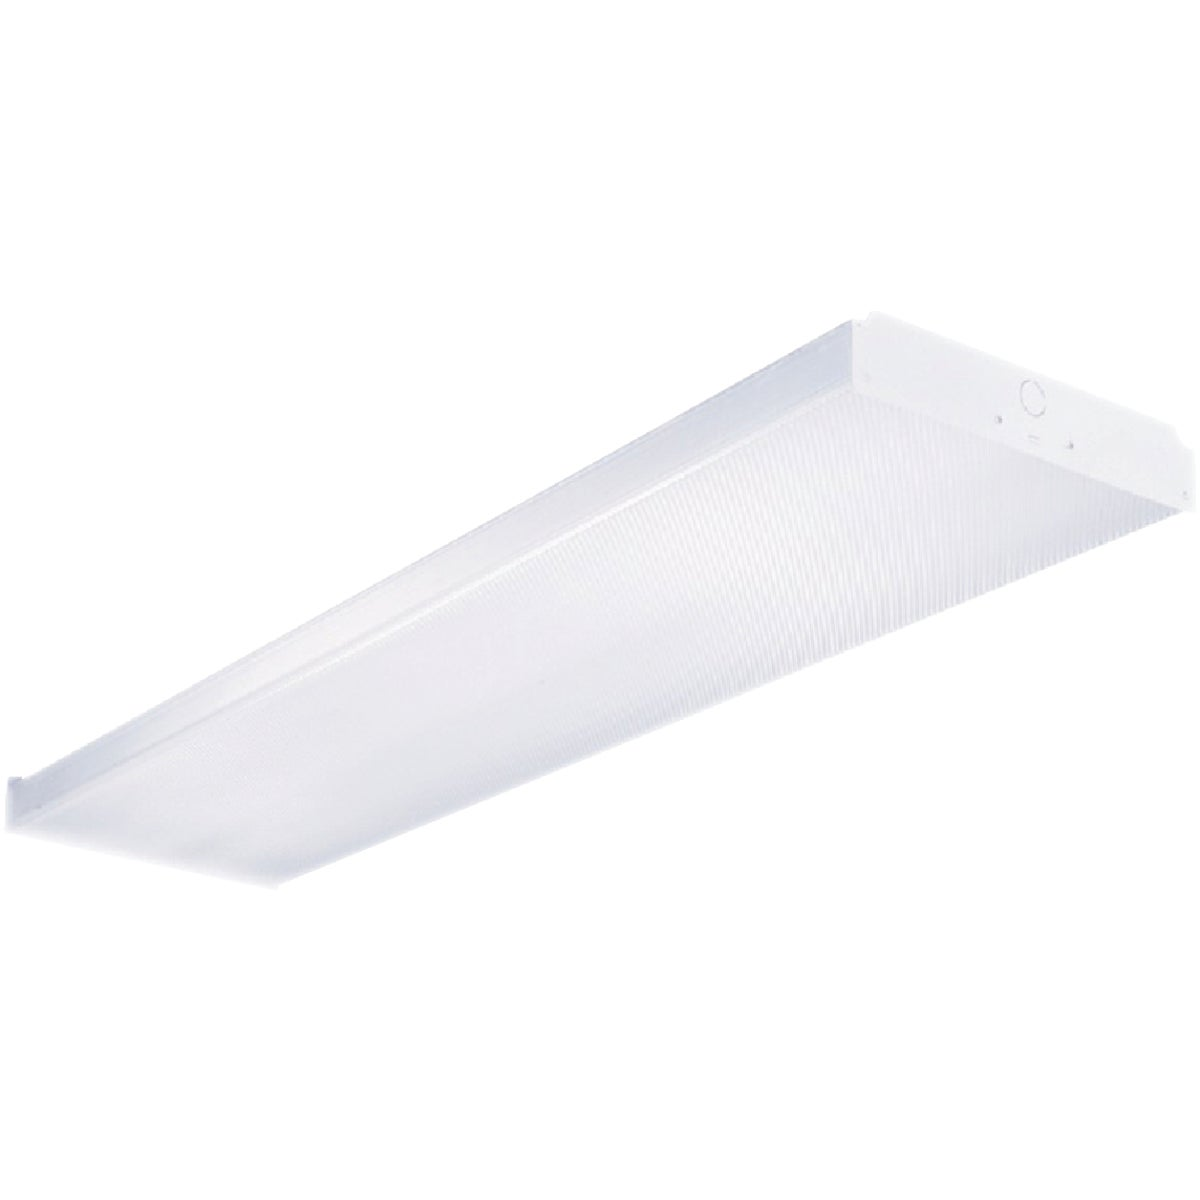 4' T8 2BULB WHT FLU WRAP - SB232120GESB by Lithonia Lighting